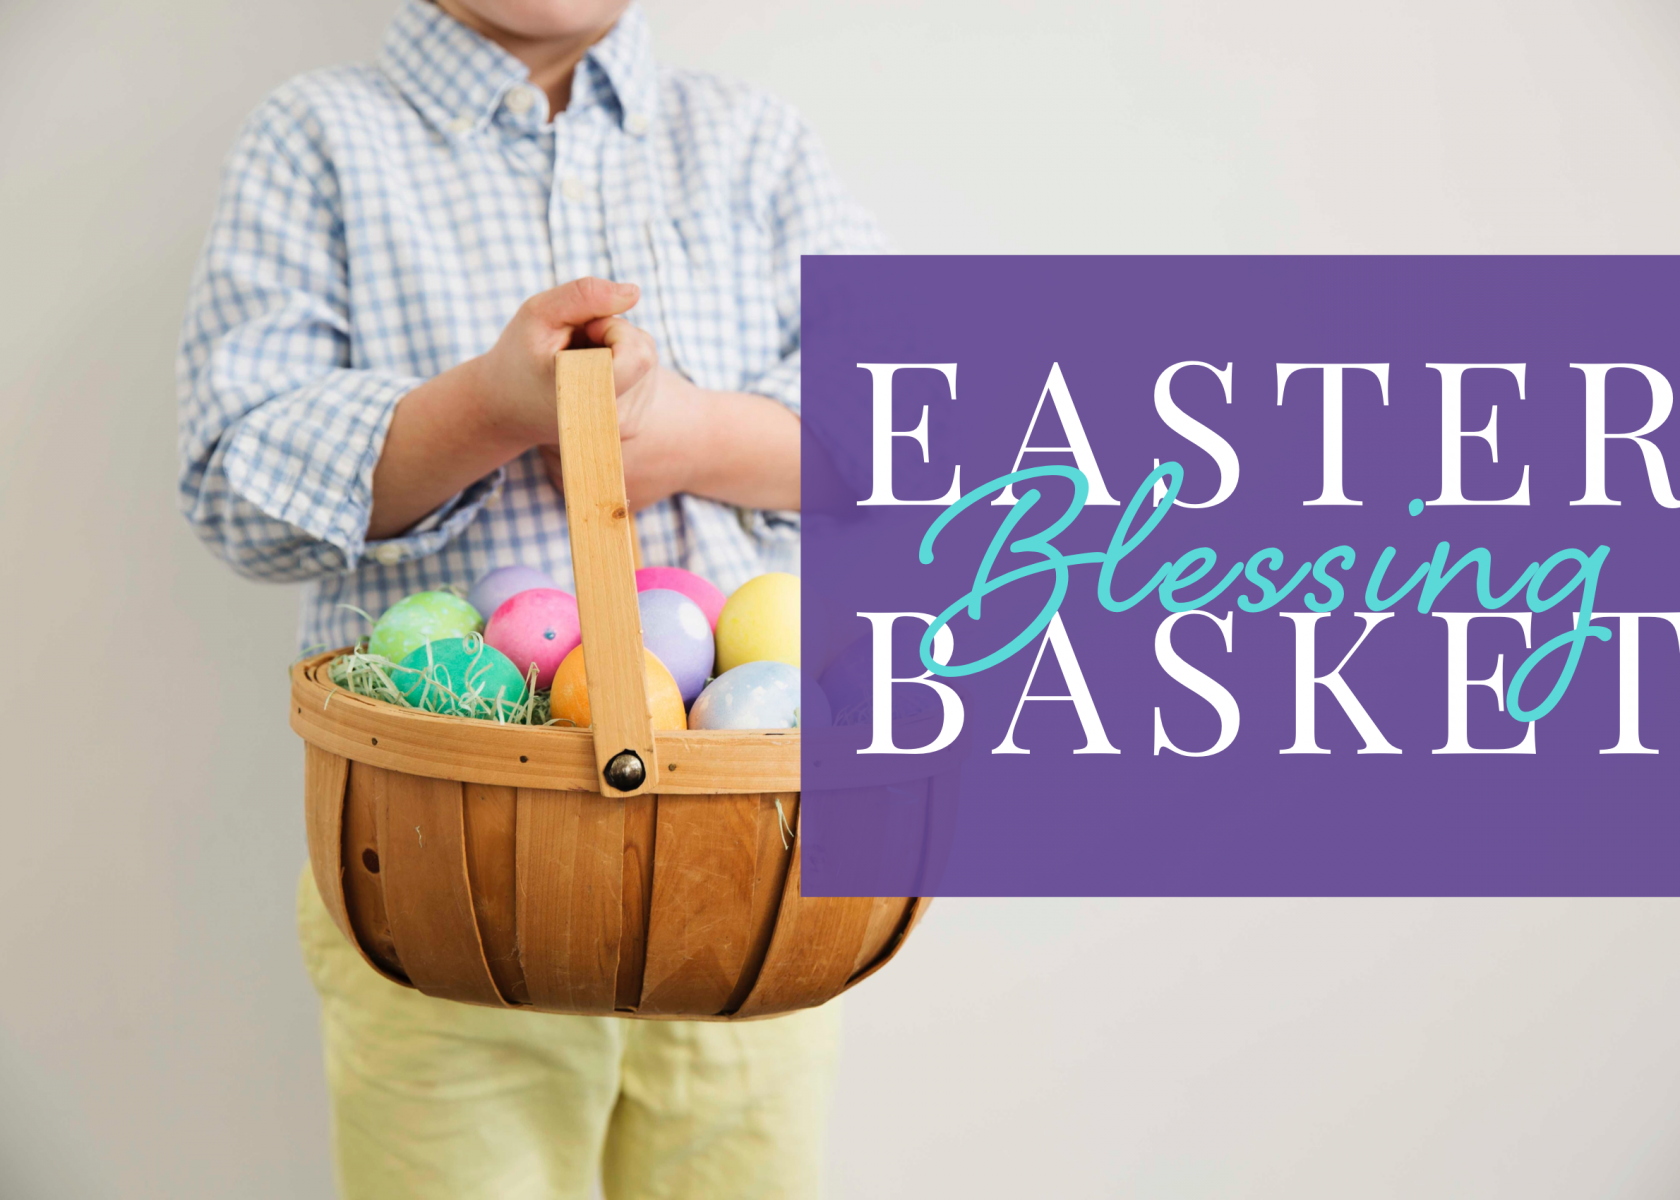 Easter Basket Blessing